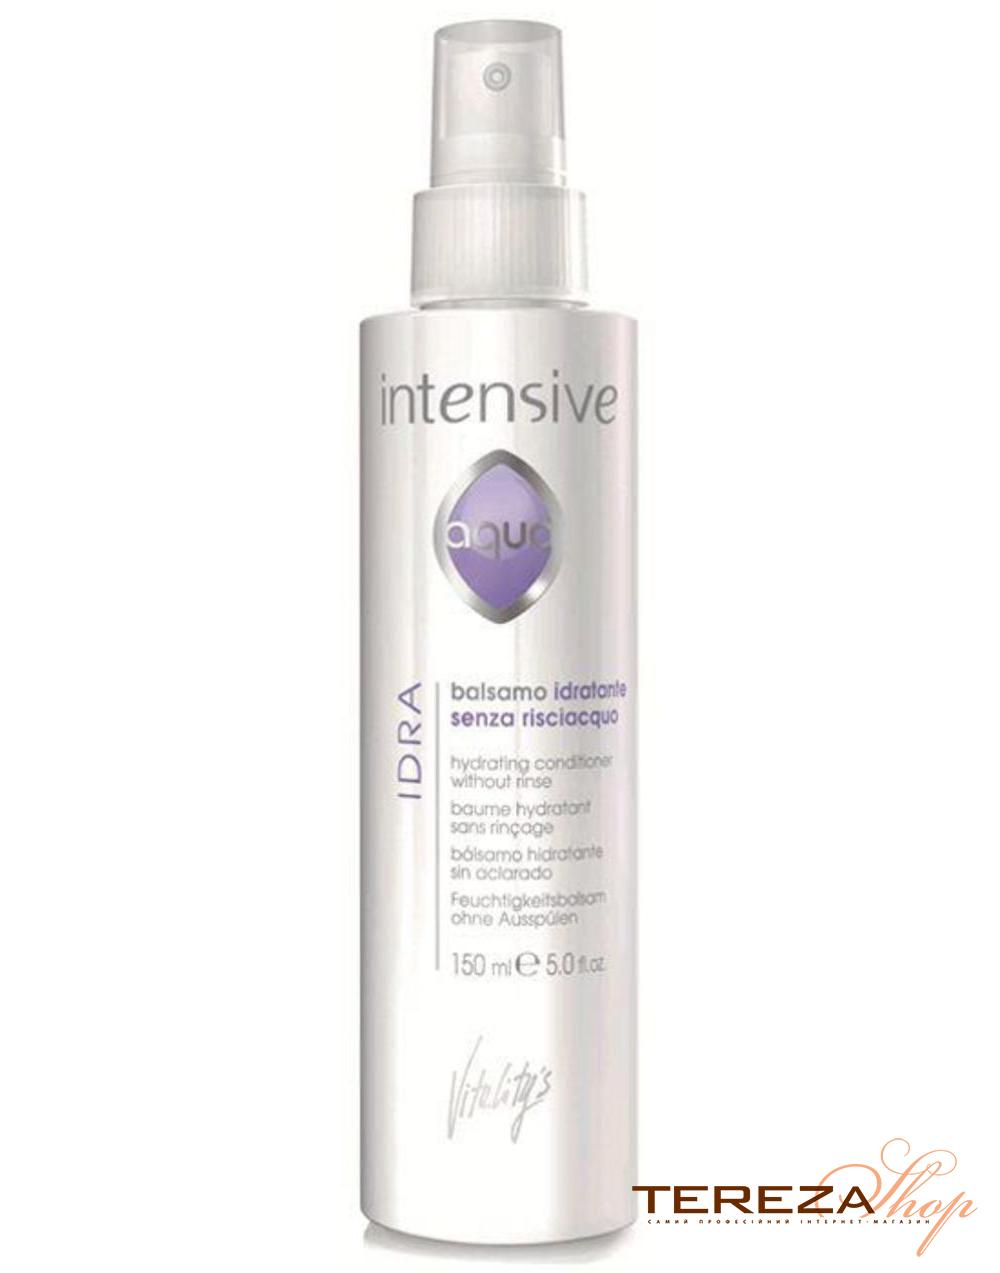 INTENSIVE AQUA IDRA CONDITIONER VITALITY'S  | Tereza Shop